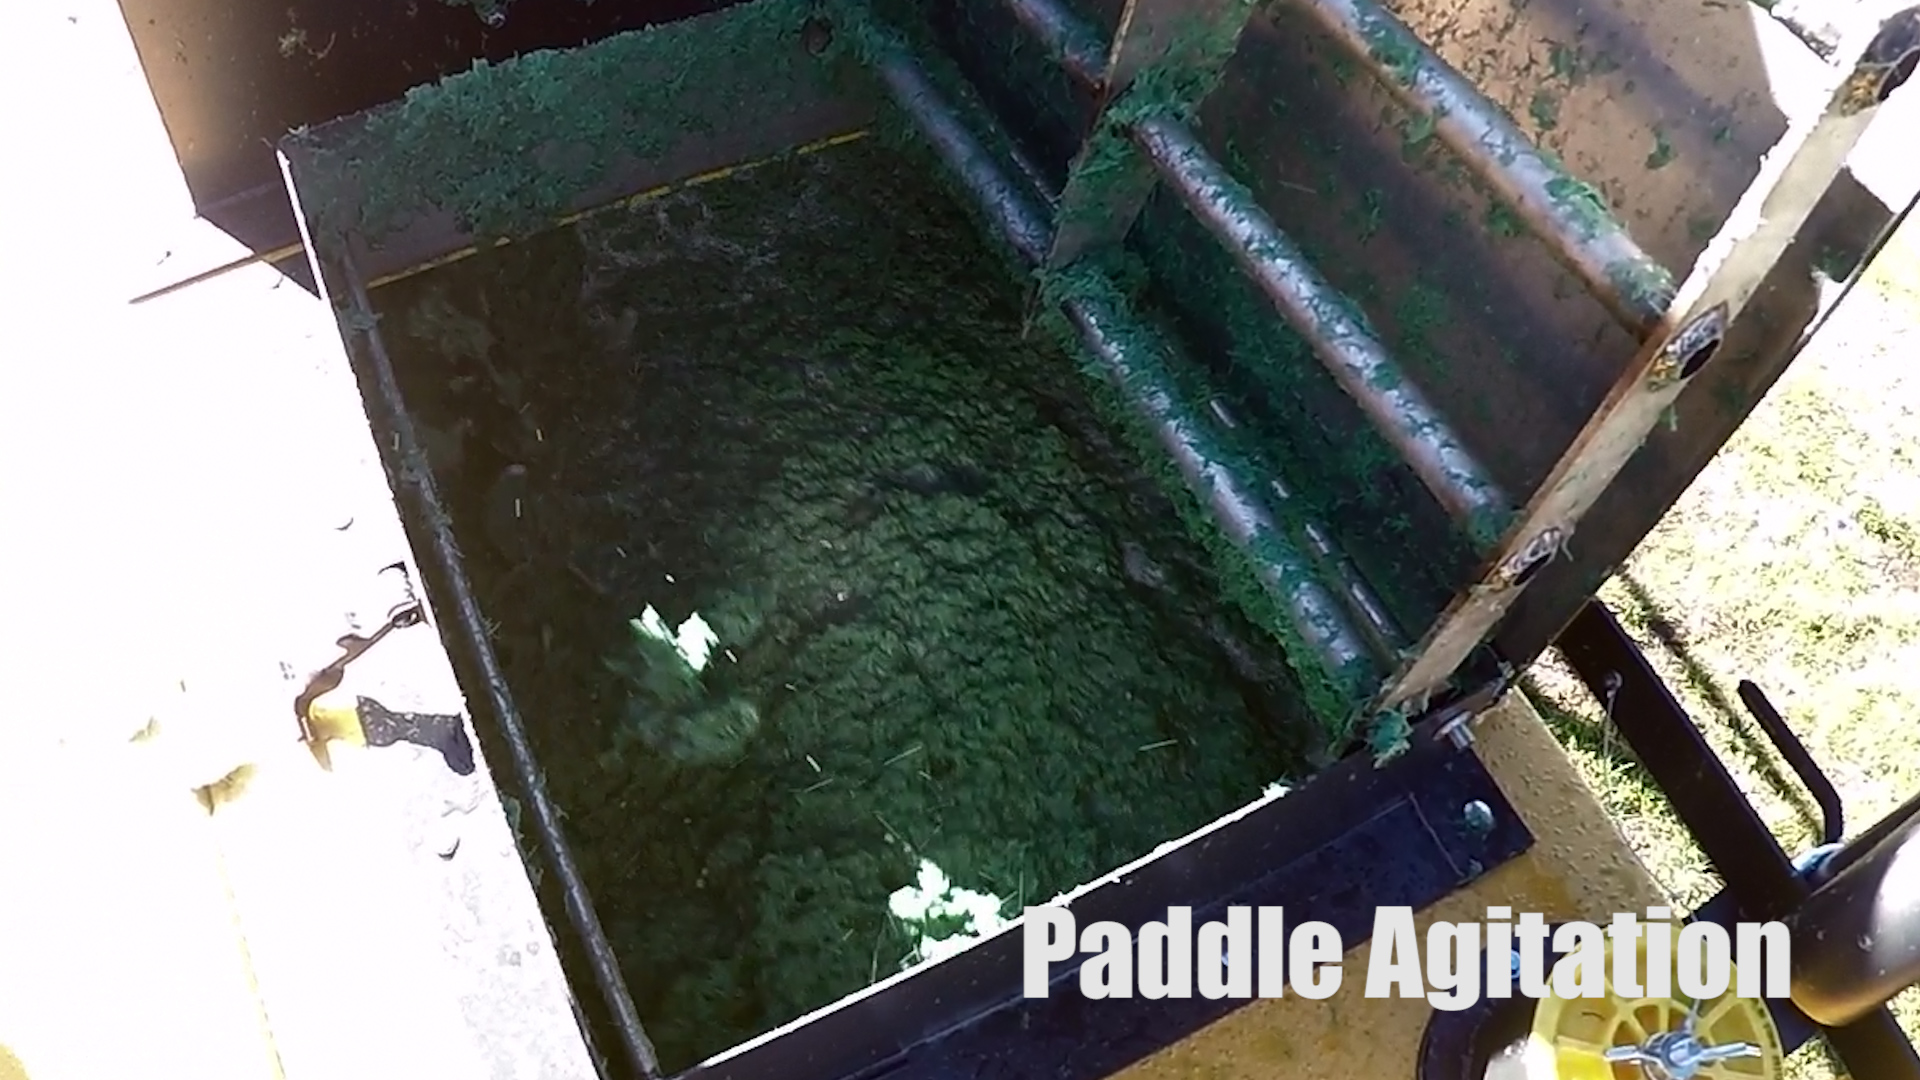 2151_paddle-agitation Commercial Hydroseeder For Sale | C90 | 800 Gallon Tank